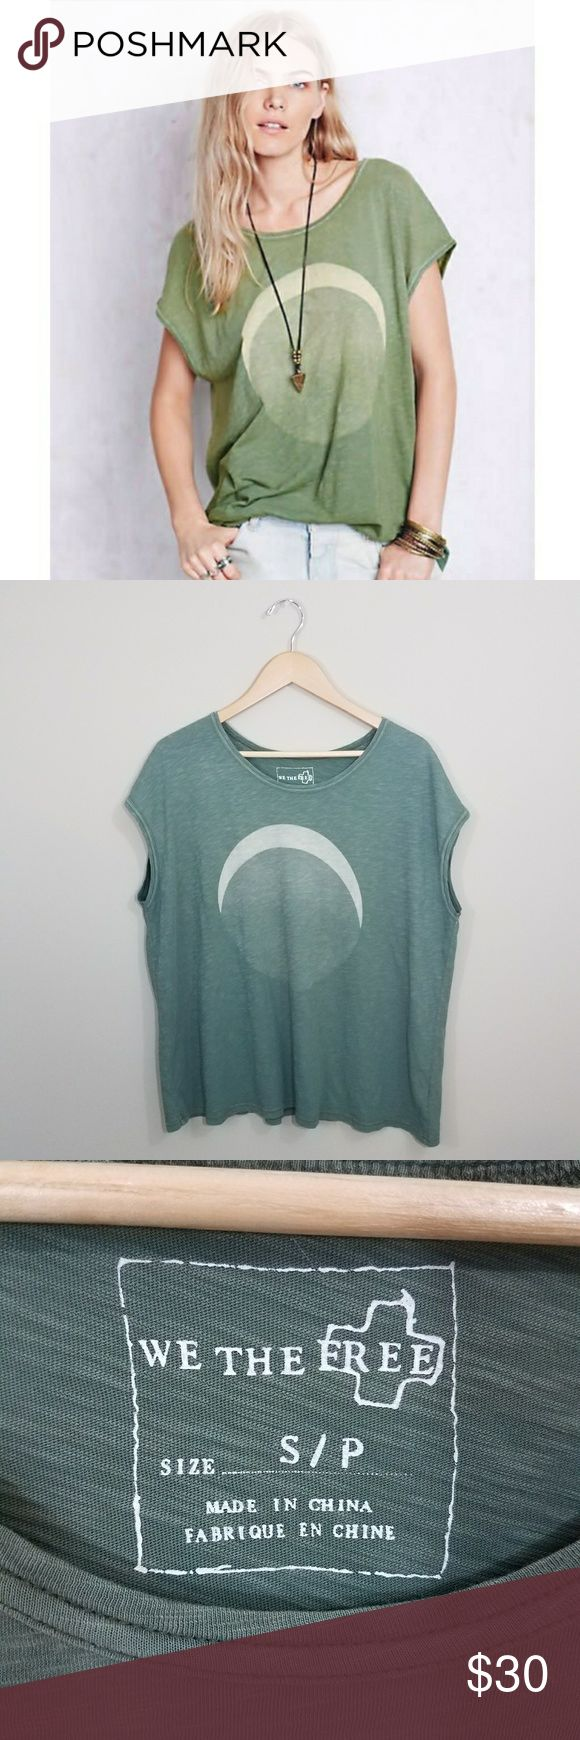 """We the Free Thunder Moon t-shirt Oversized t-shirt. Chest 27"""" armpit to armpit, length 26"""" from the top of the shoulders to the bottom of the shirt. 100% cotton. Free People Tops Tees - Short Sleeve"""